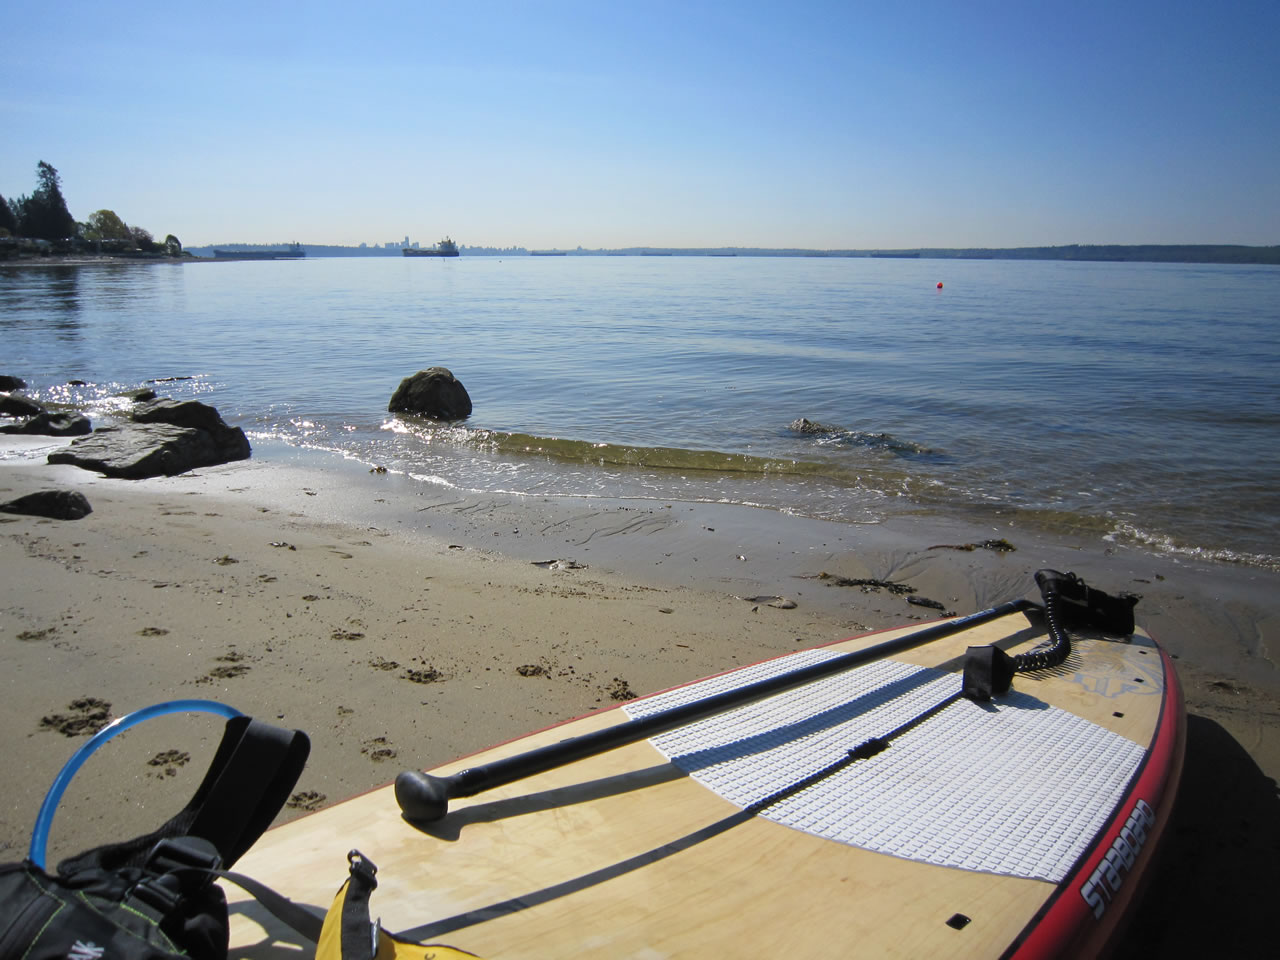 starboard-touring-standup-paddleboard-12-604